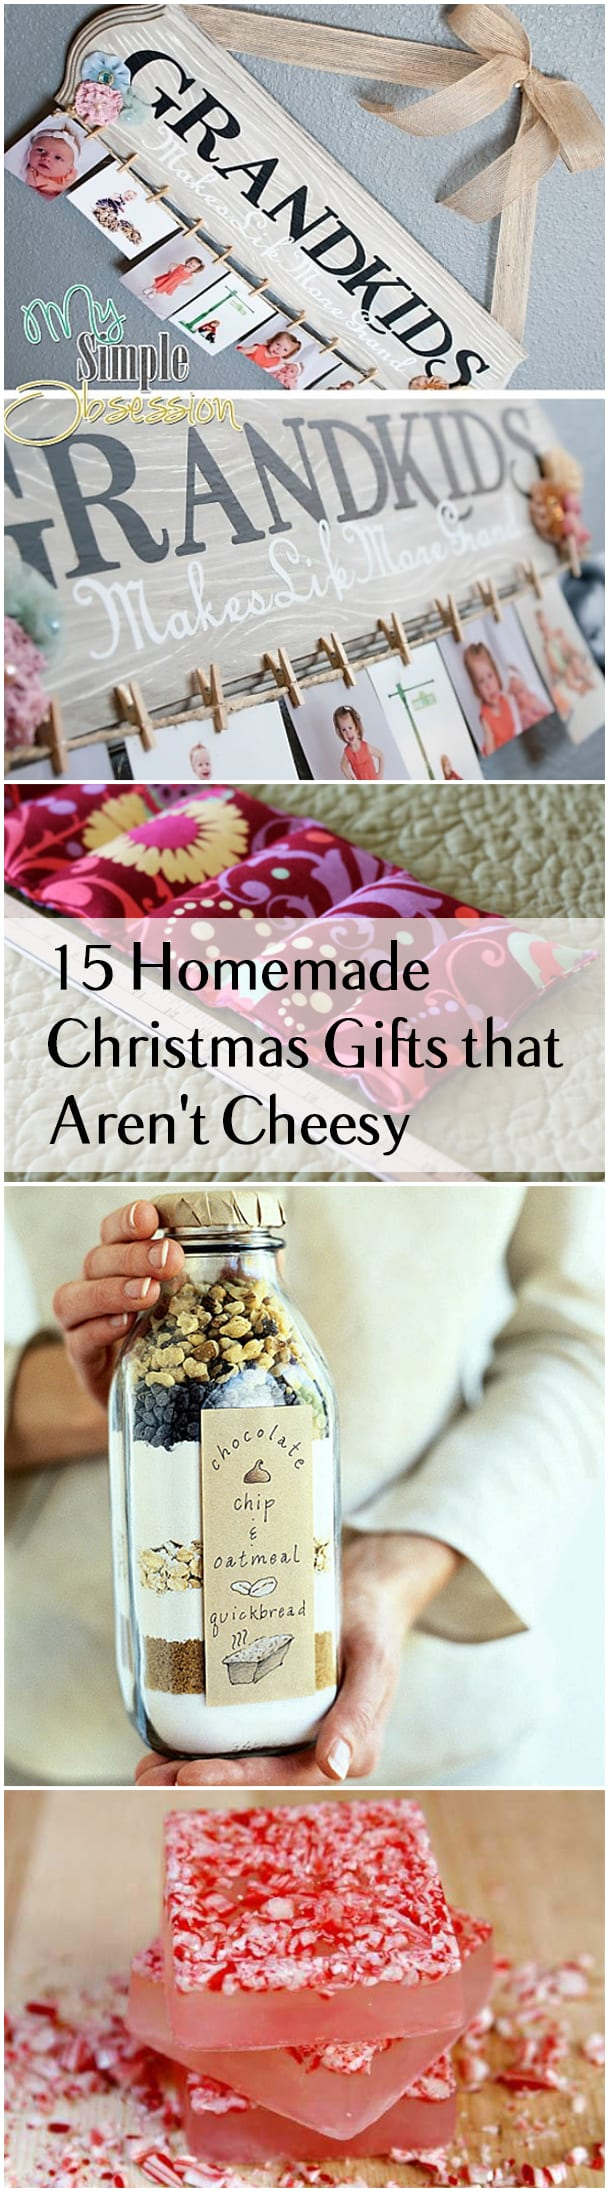 15 homemade christmas gifts that arent cheesy solutioingenieria Gallery